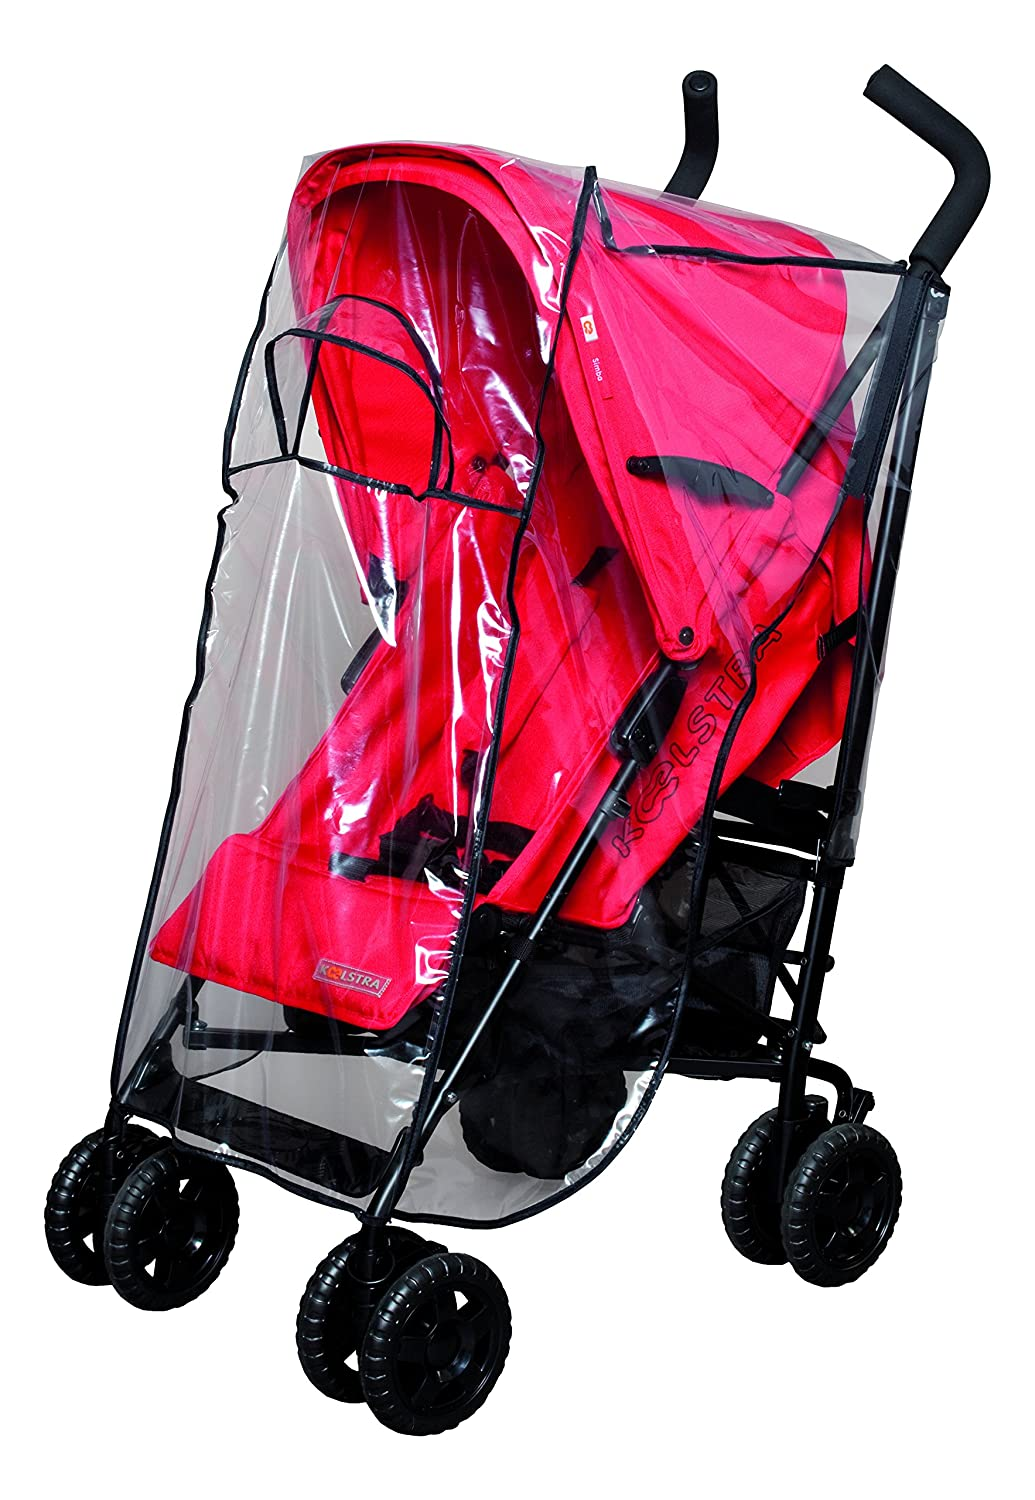 Sunnybaby Rain Cover for Buggy with Canopy 10097